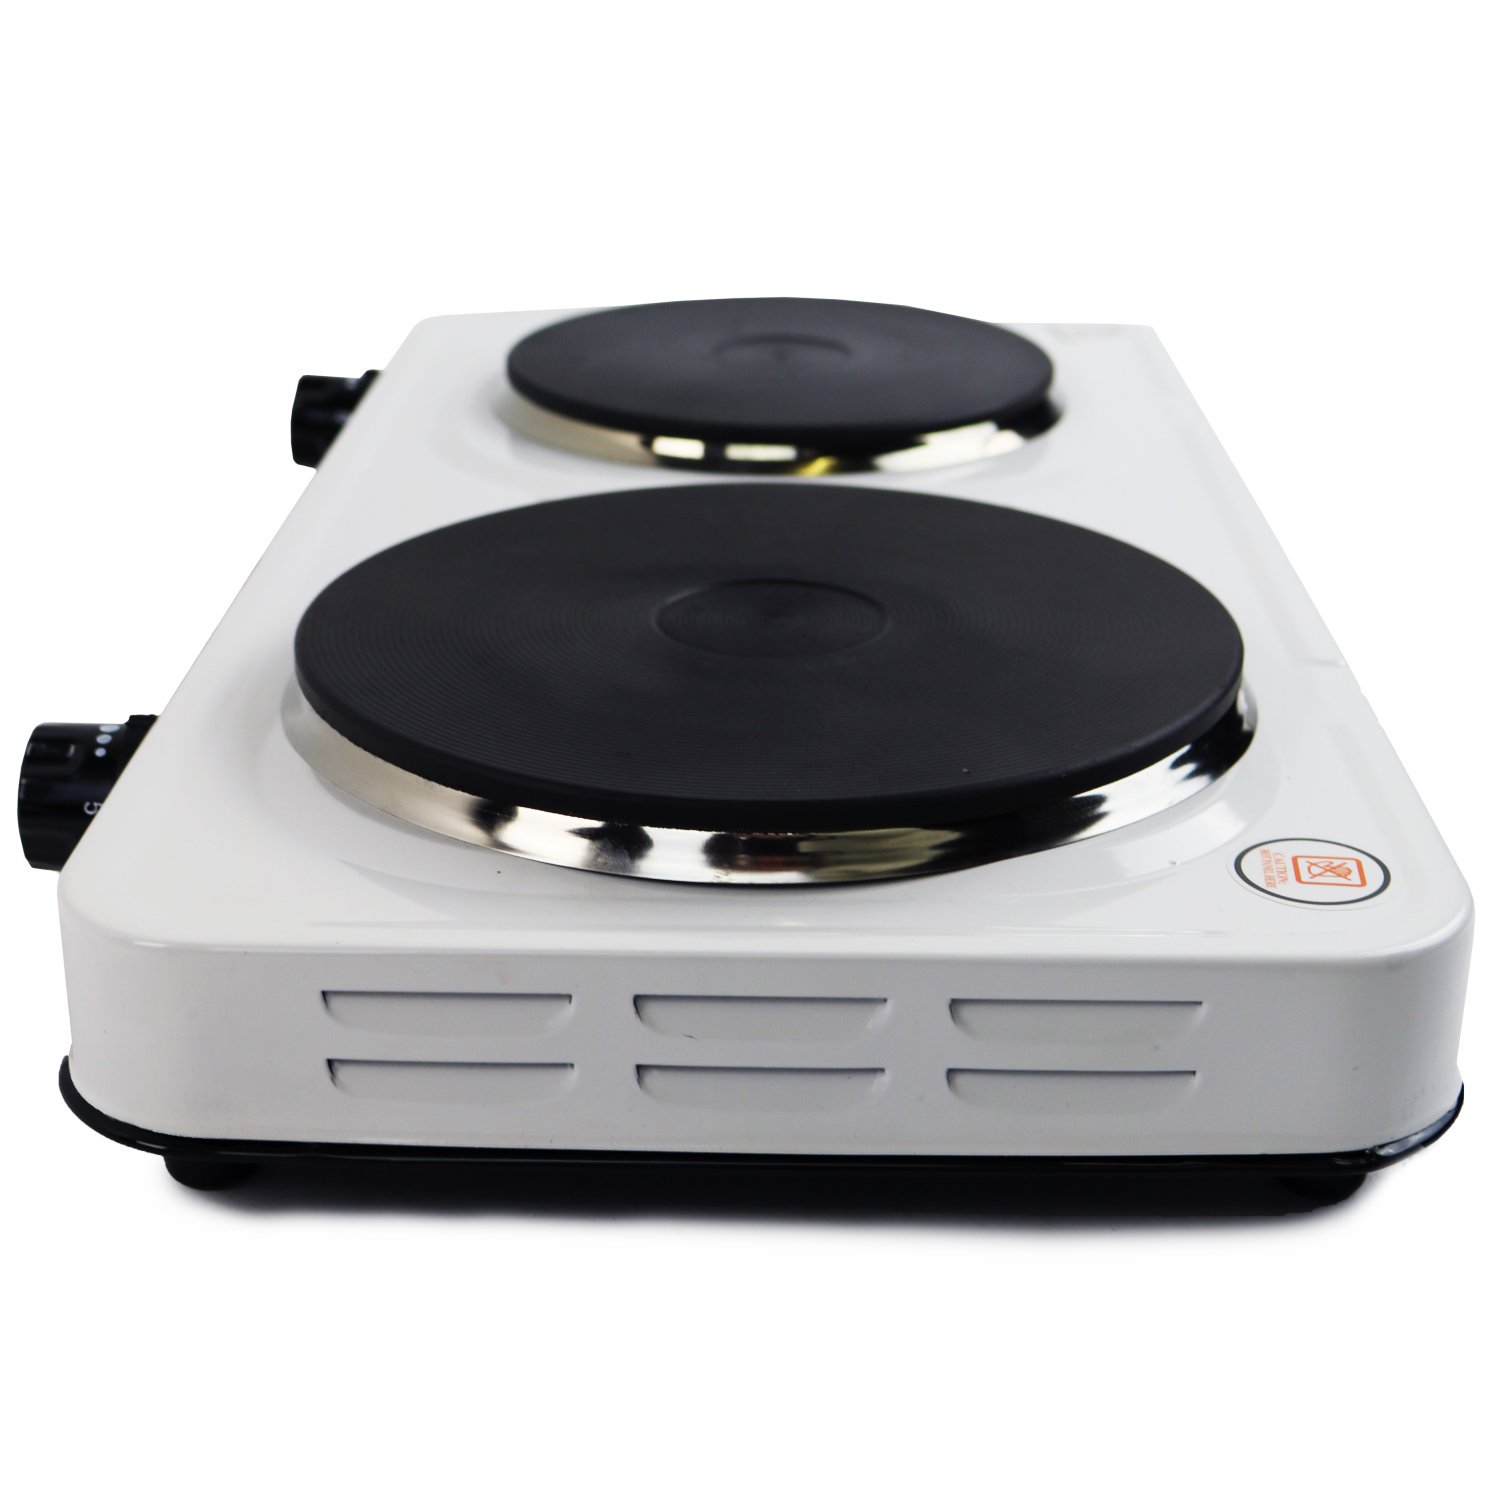 (RU15) 2.5Kw Electric Portable Kitchen Double Hot Plate The 2.5kW electric hot plate is an e... - Image 2 of 2